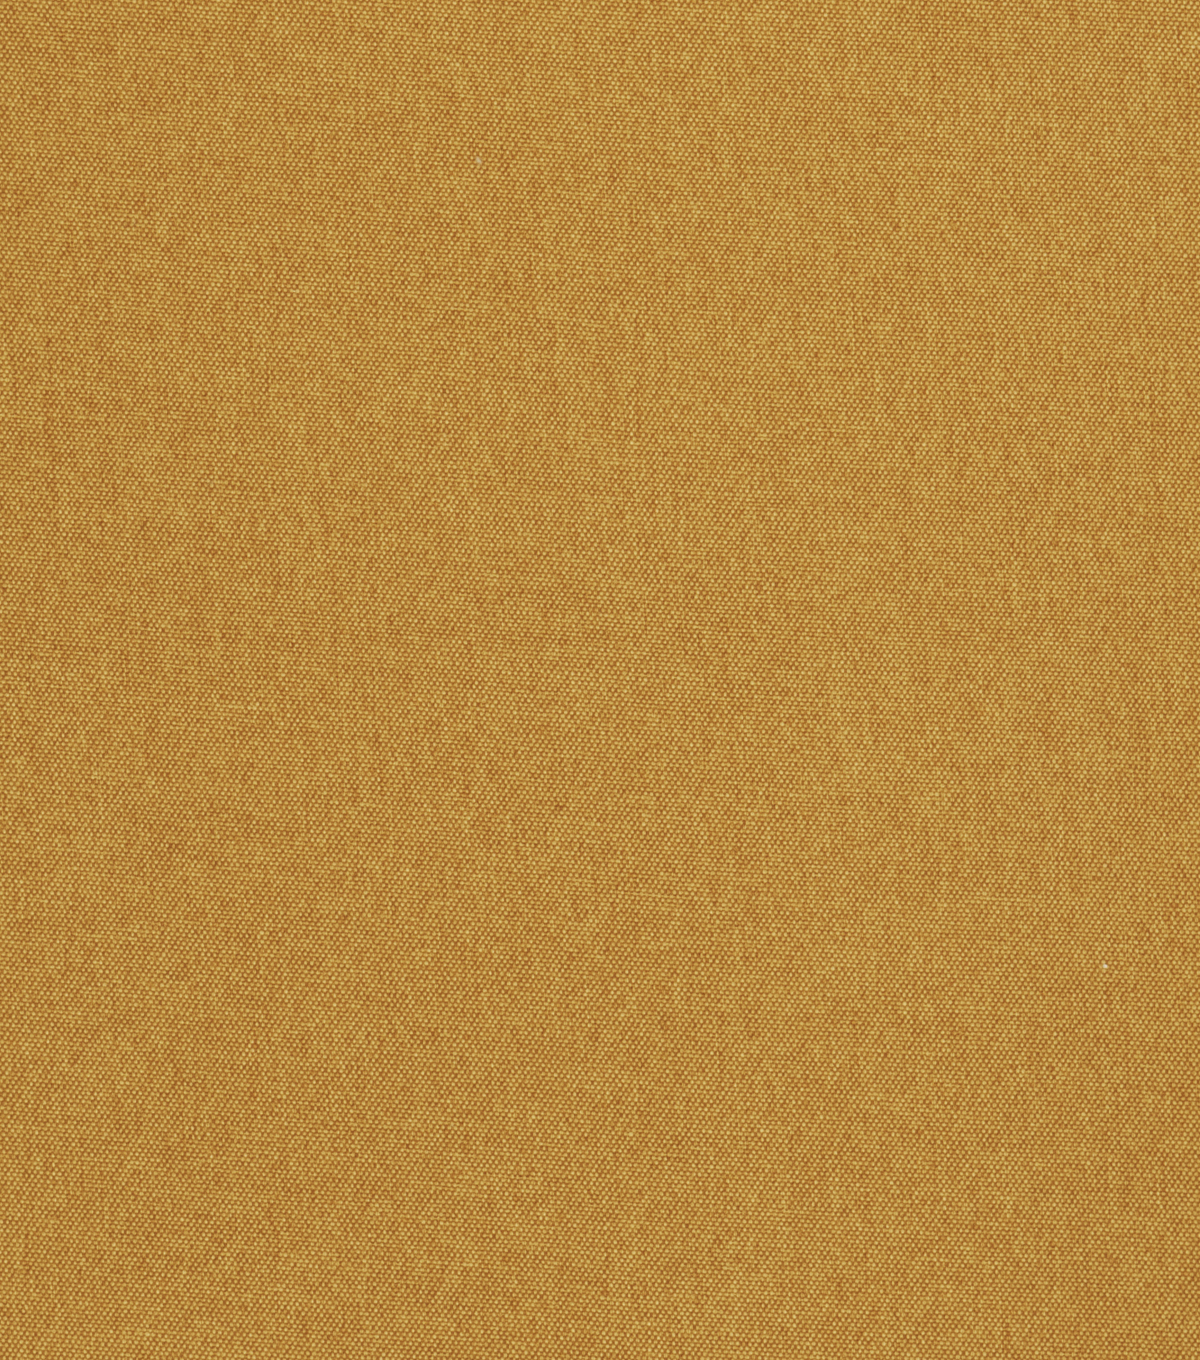 Home Decor 8x8 Fabric Swatch-Eaton Square Gardner Mustard